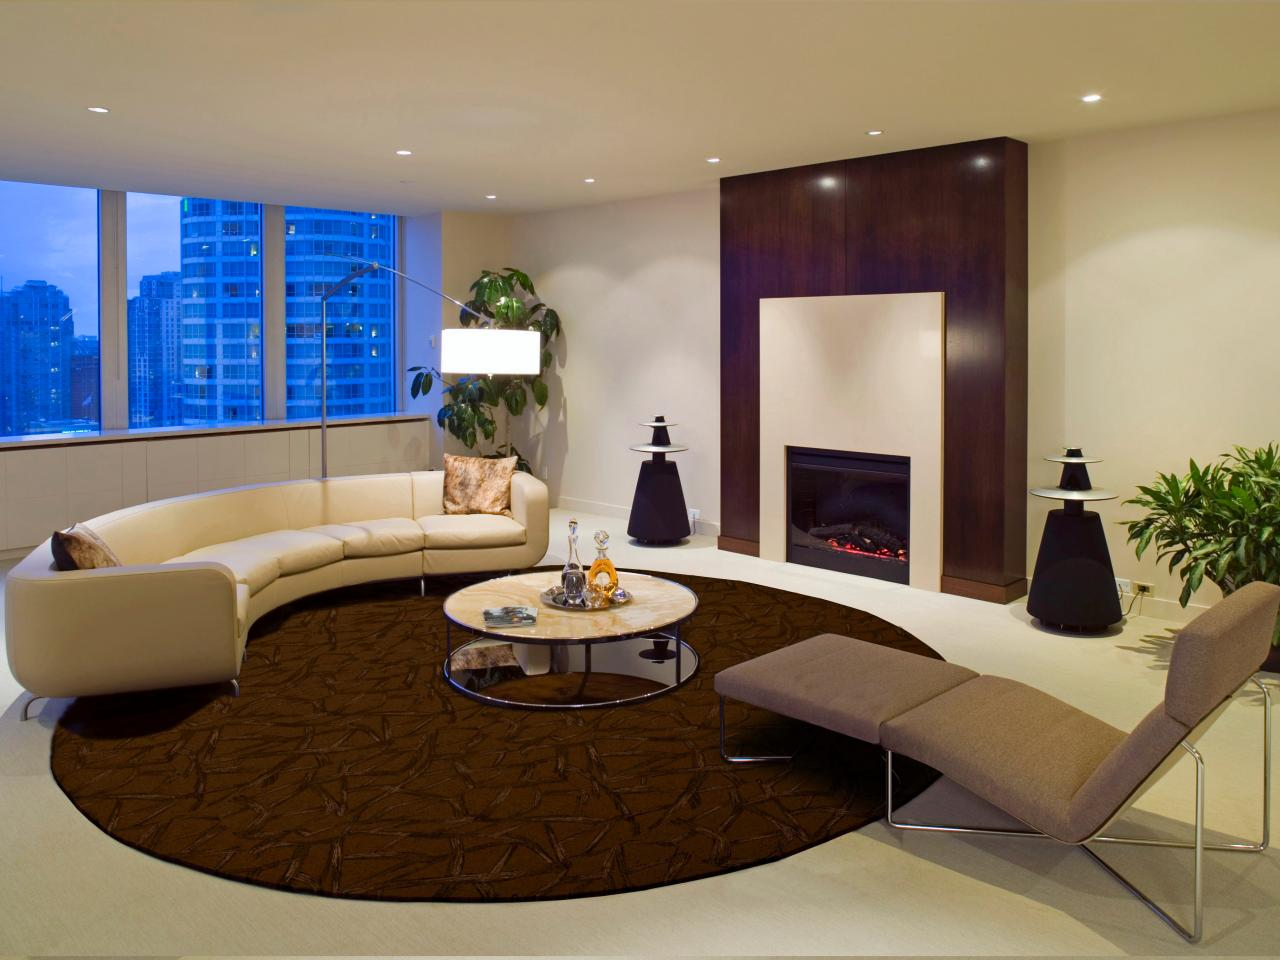 Choosing the best area rug for your space hgtv - Living room area rugs contemporary ...